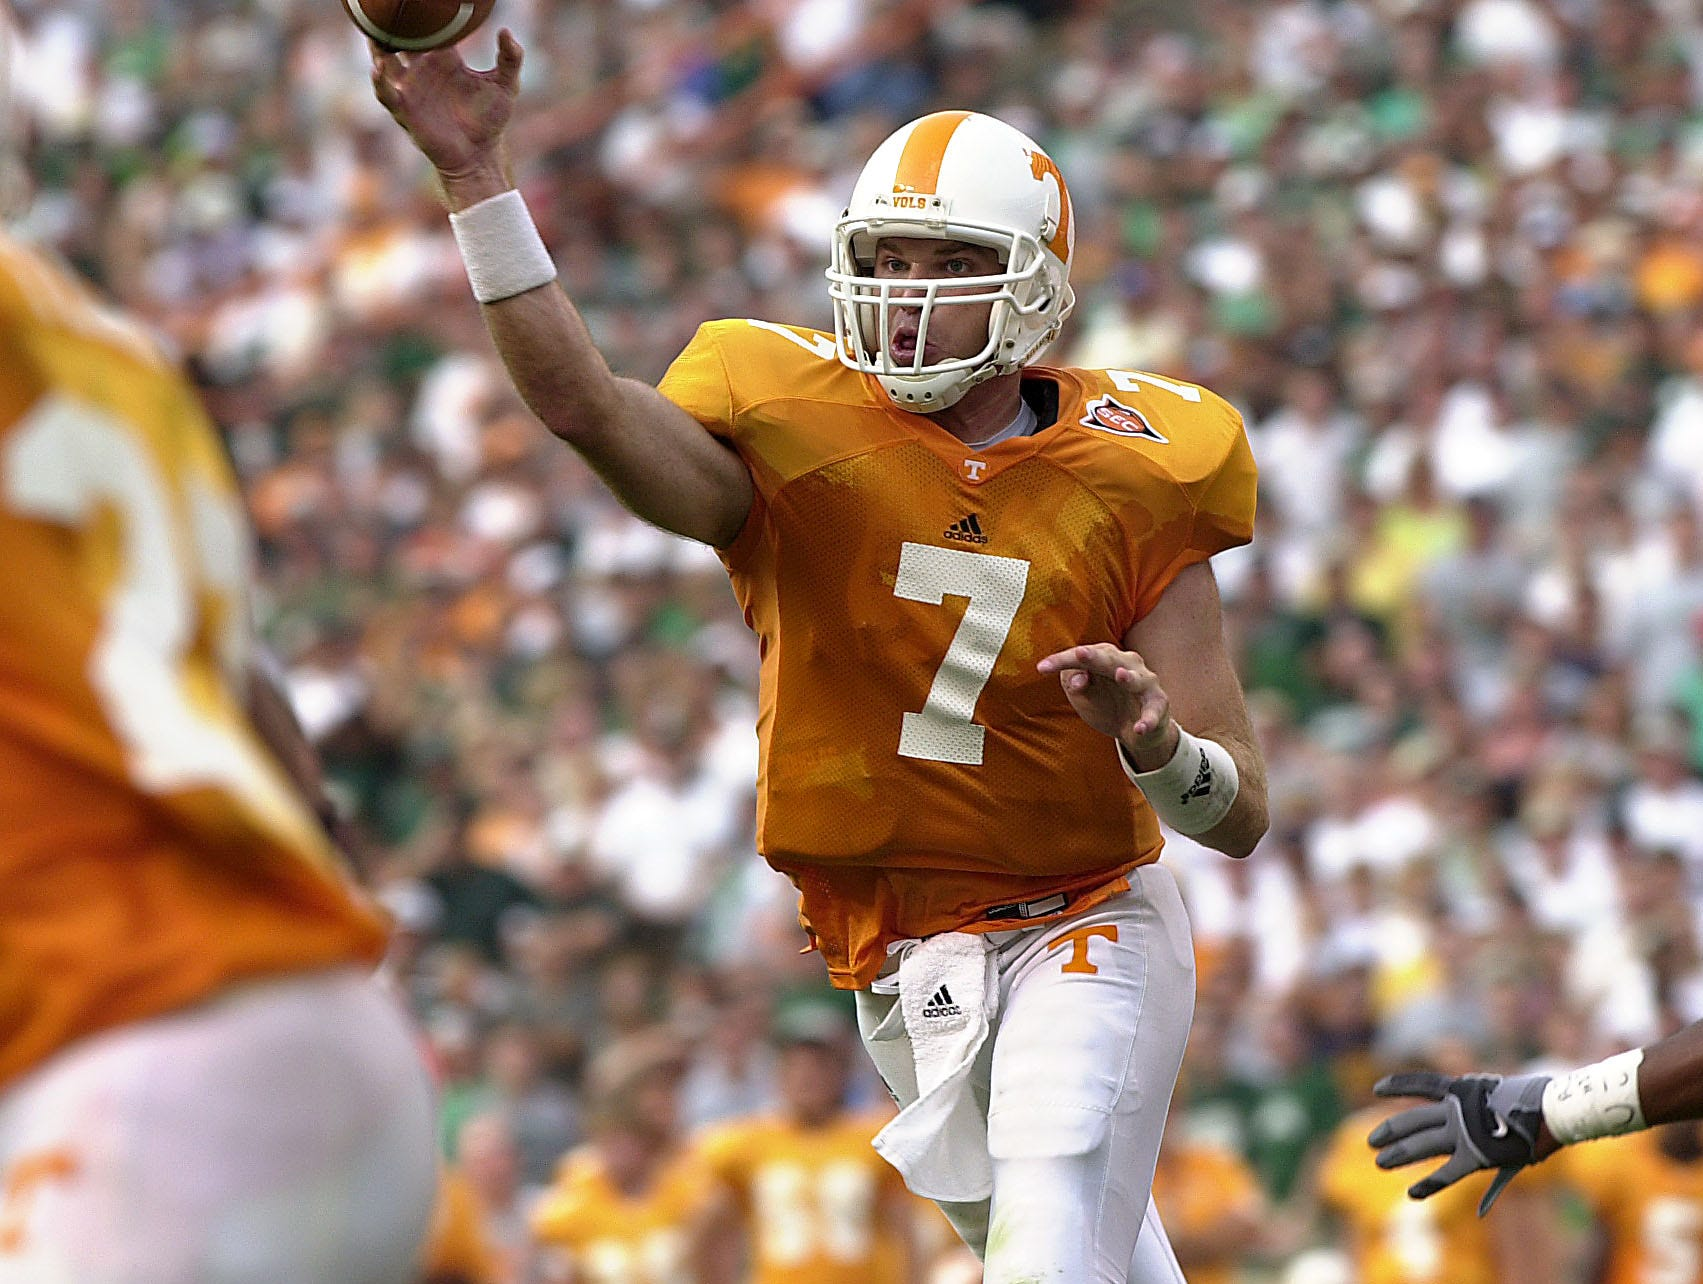 Tennessee quarterback (7) Casey Clausen release a pass during action Saturday in Neyland Stadium.  Tennessee beat Marshall 34-24.     9/6/2003